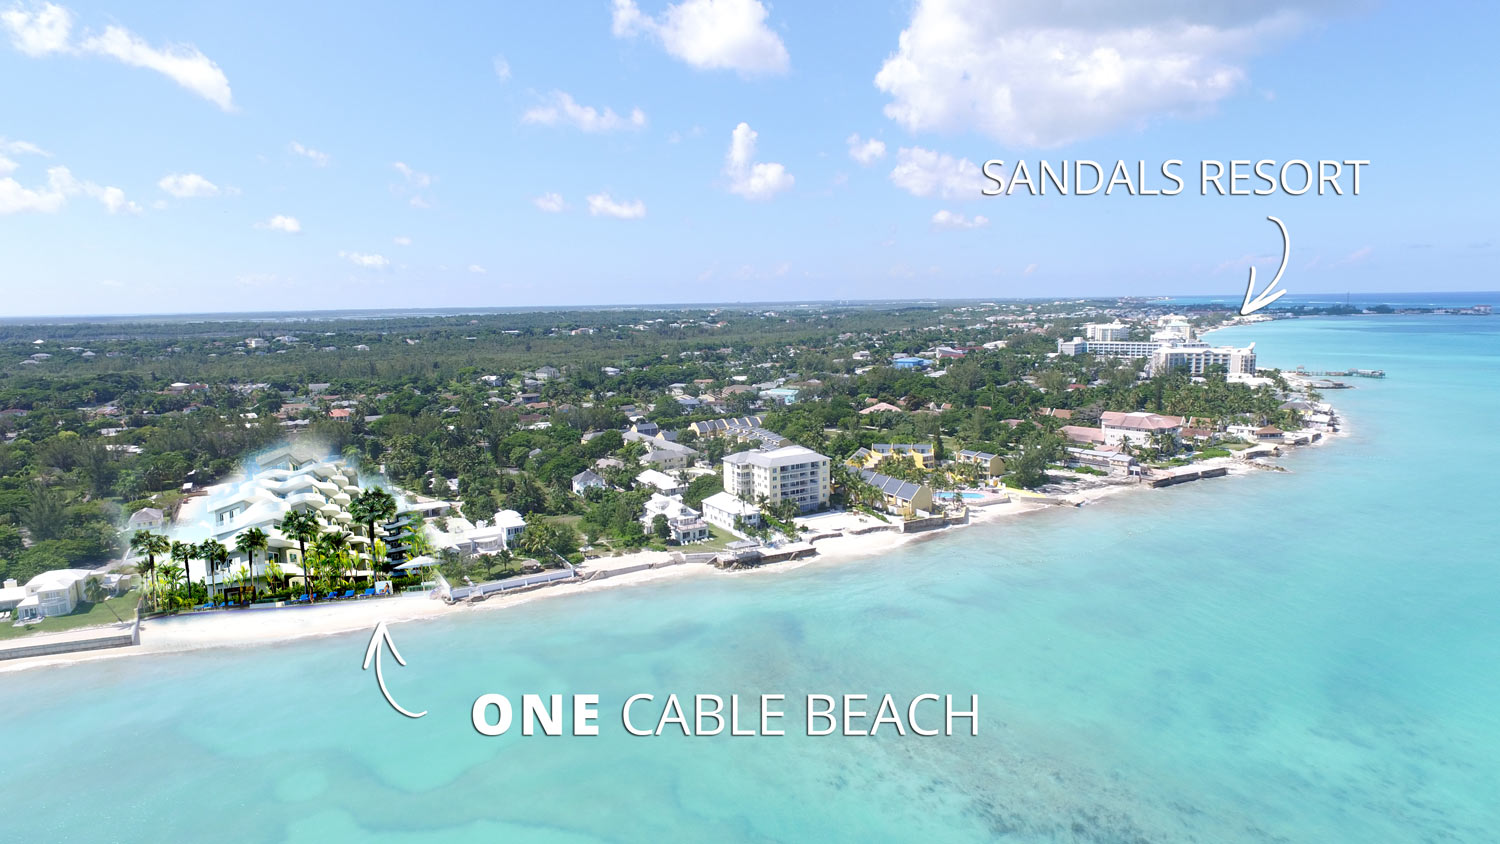 ONE Cable Beach close to Sandals Resort